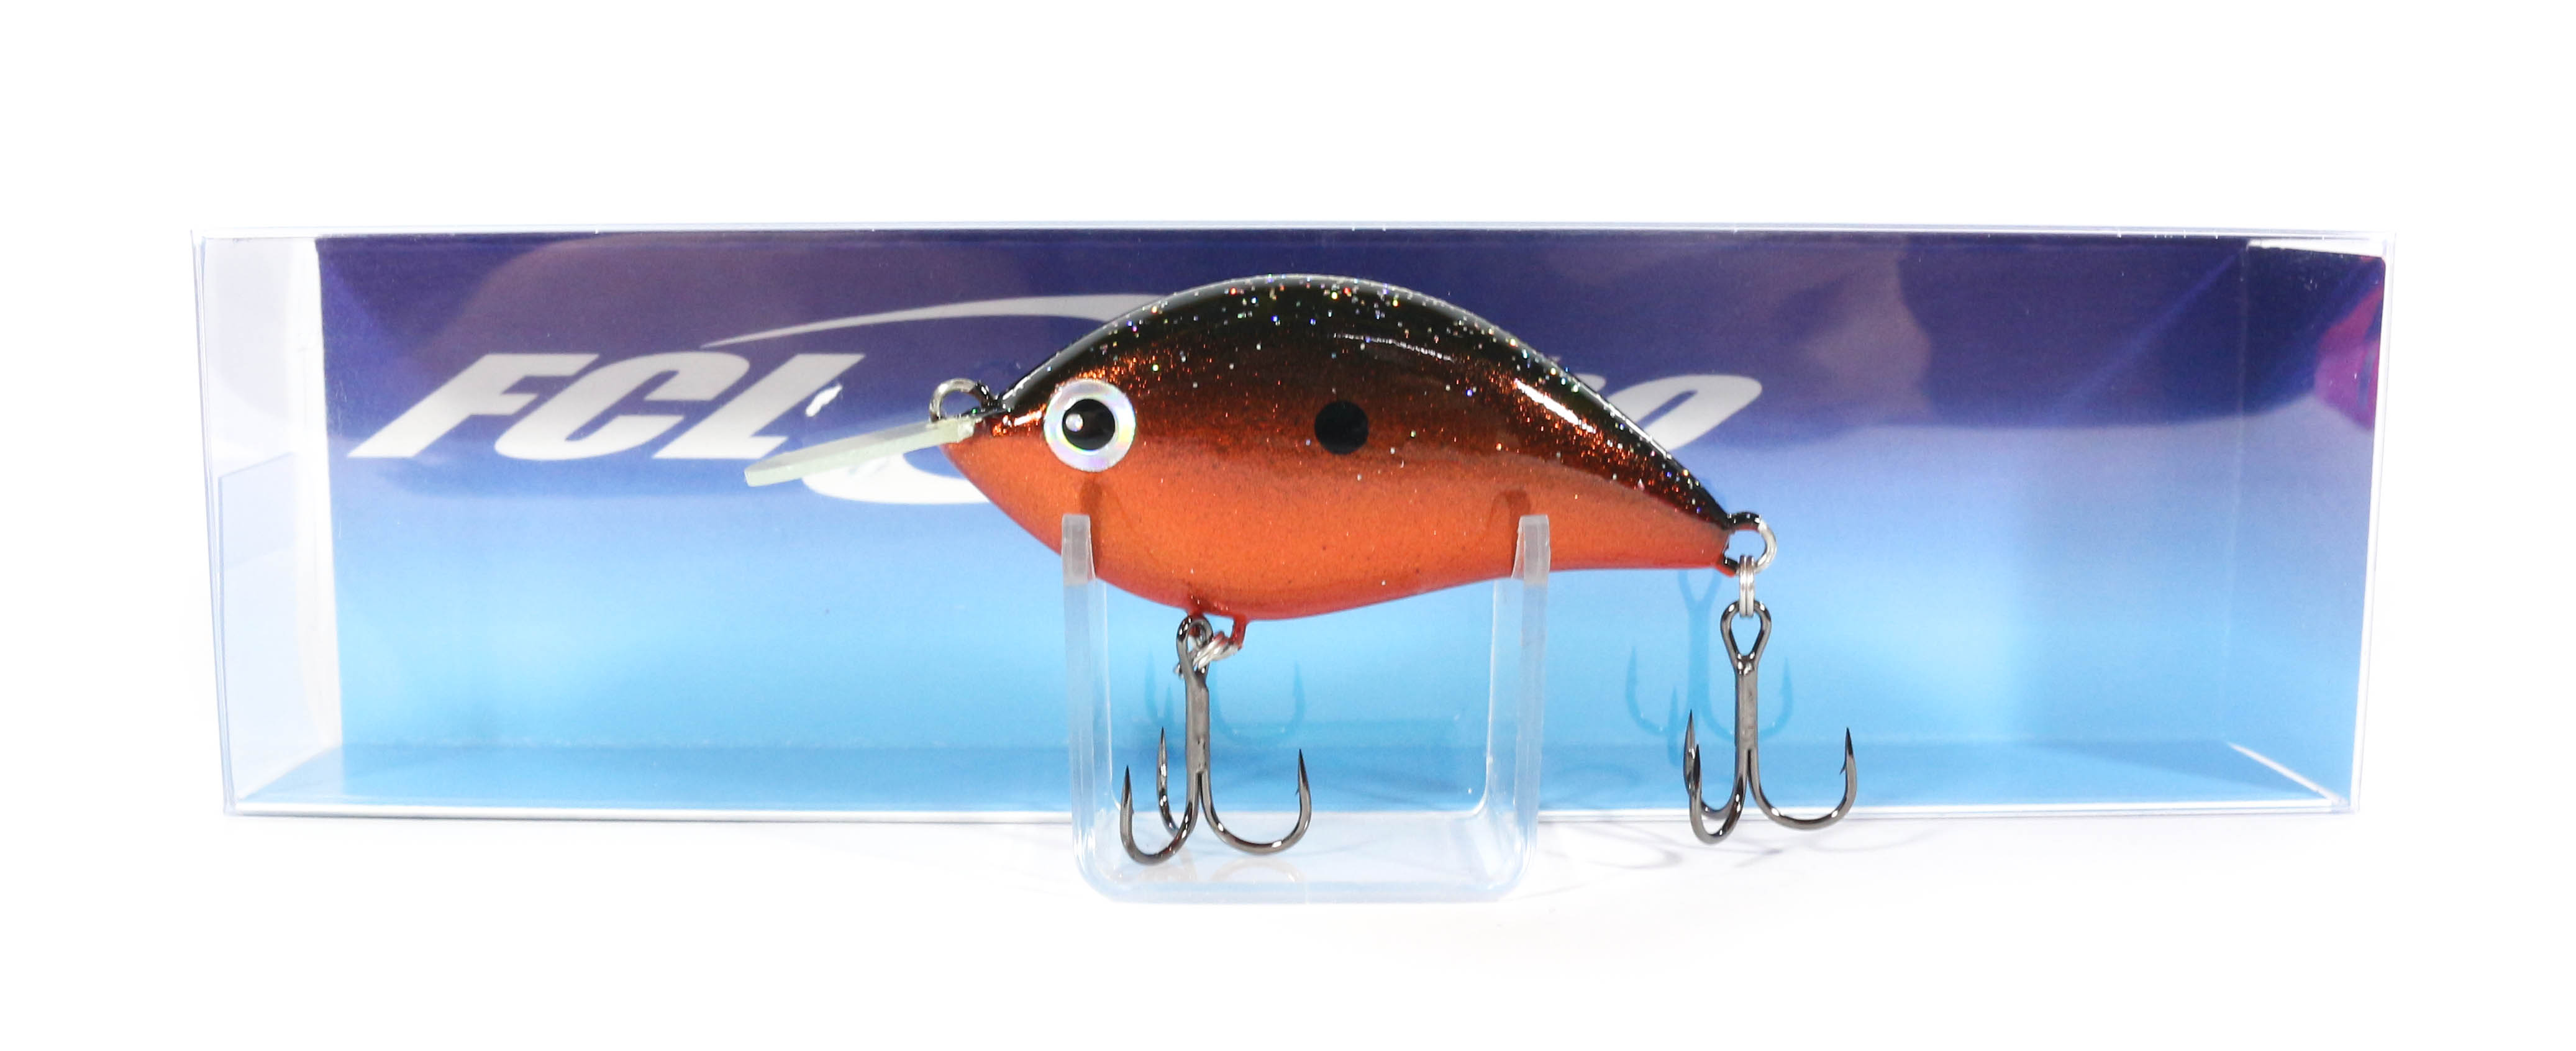 FCL Labo Lure TKC 53 Floating Lure MCB (3825)